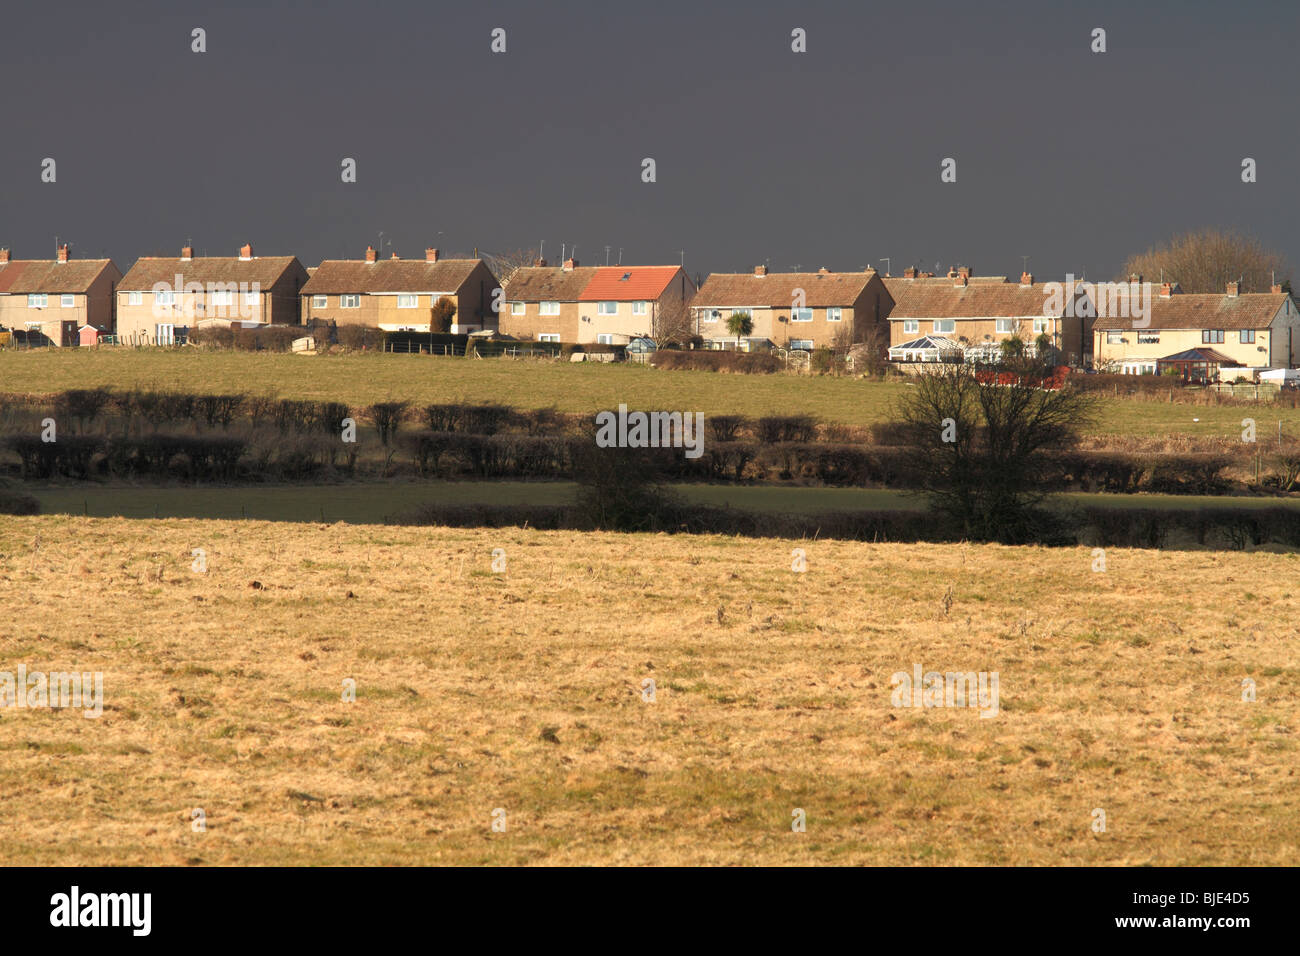 Houses and fields are highlighted by a break in the clouds,prior to stormy weather,across the rooftops of Thurcroft,Rotherham. - Stock Image